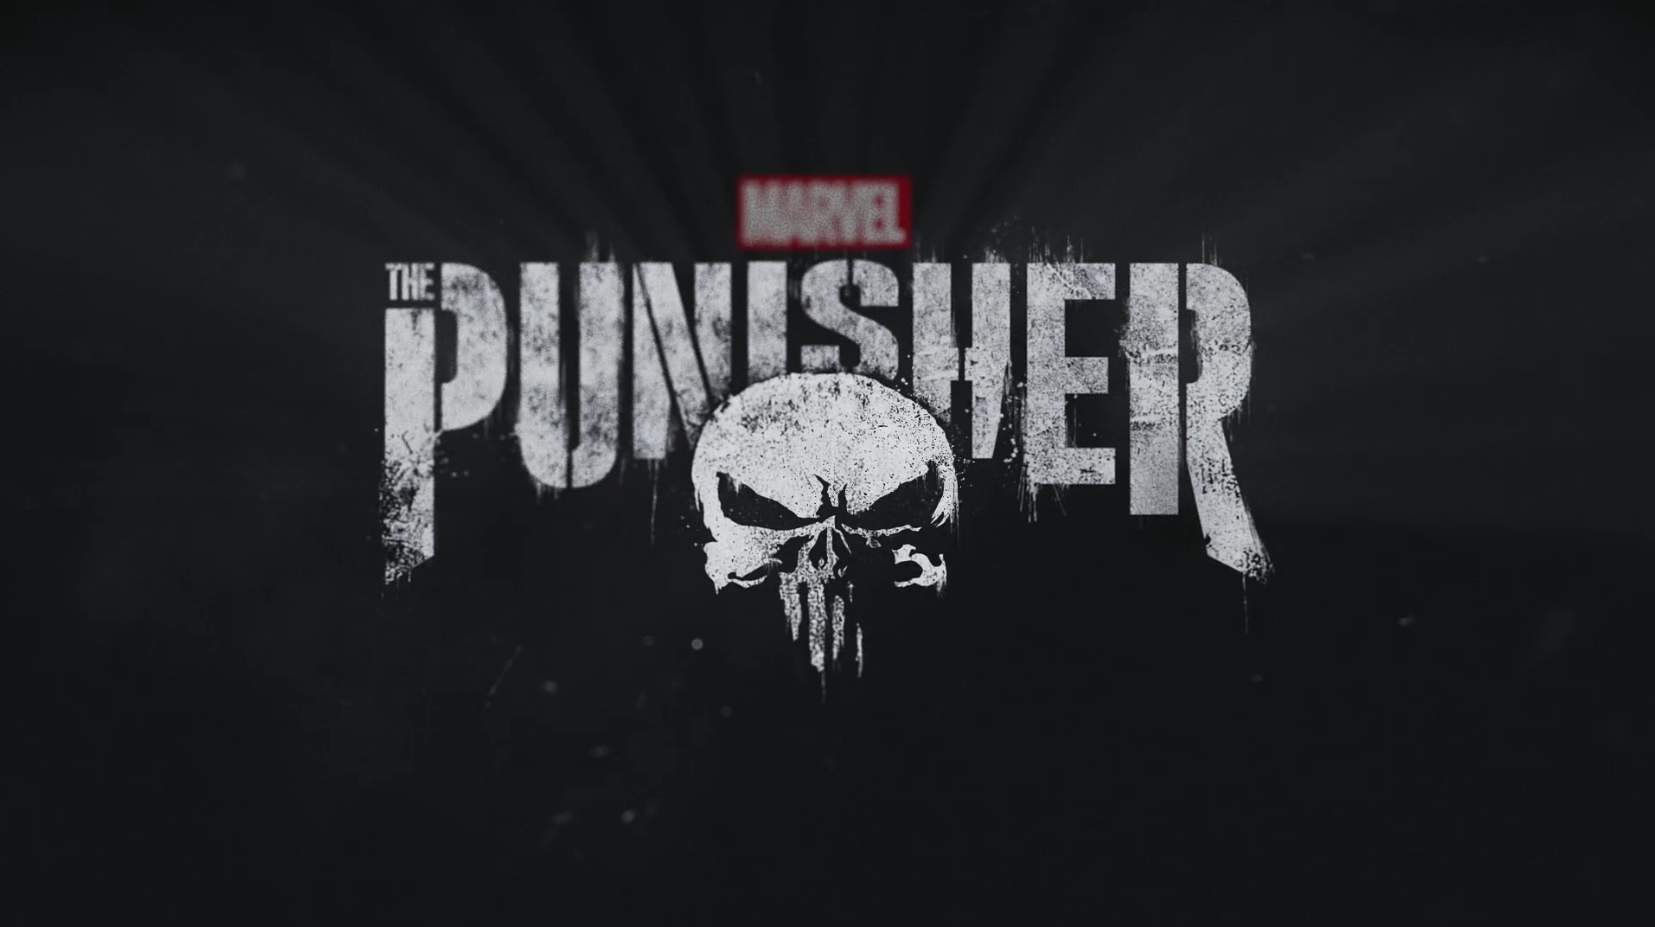 The Punisher – Titles